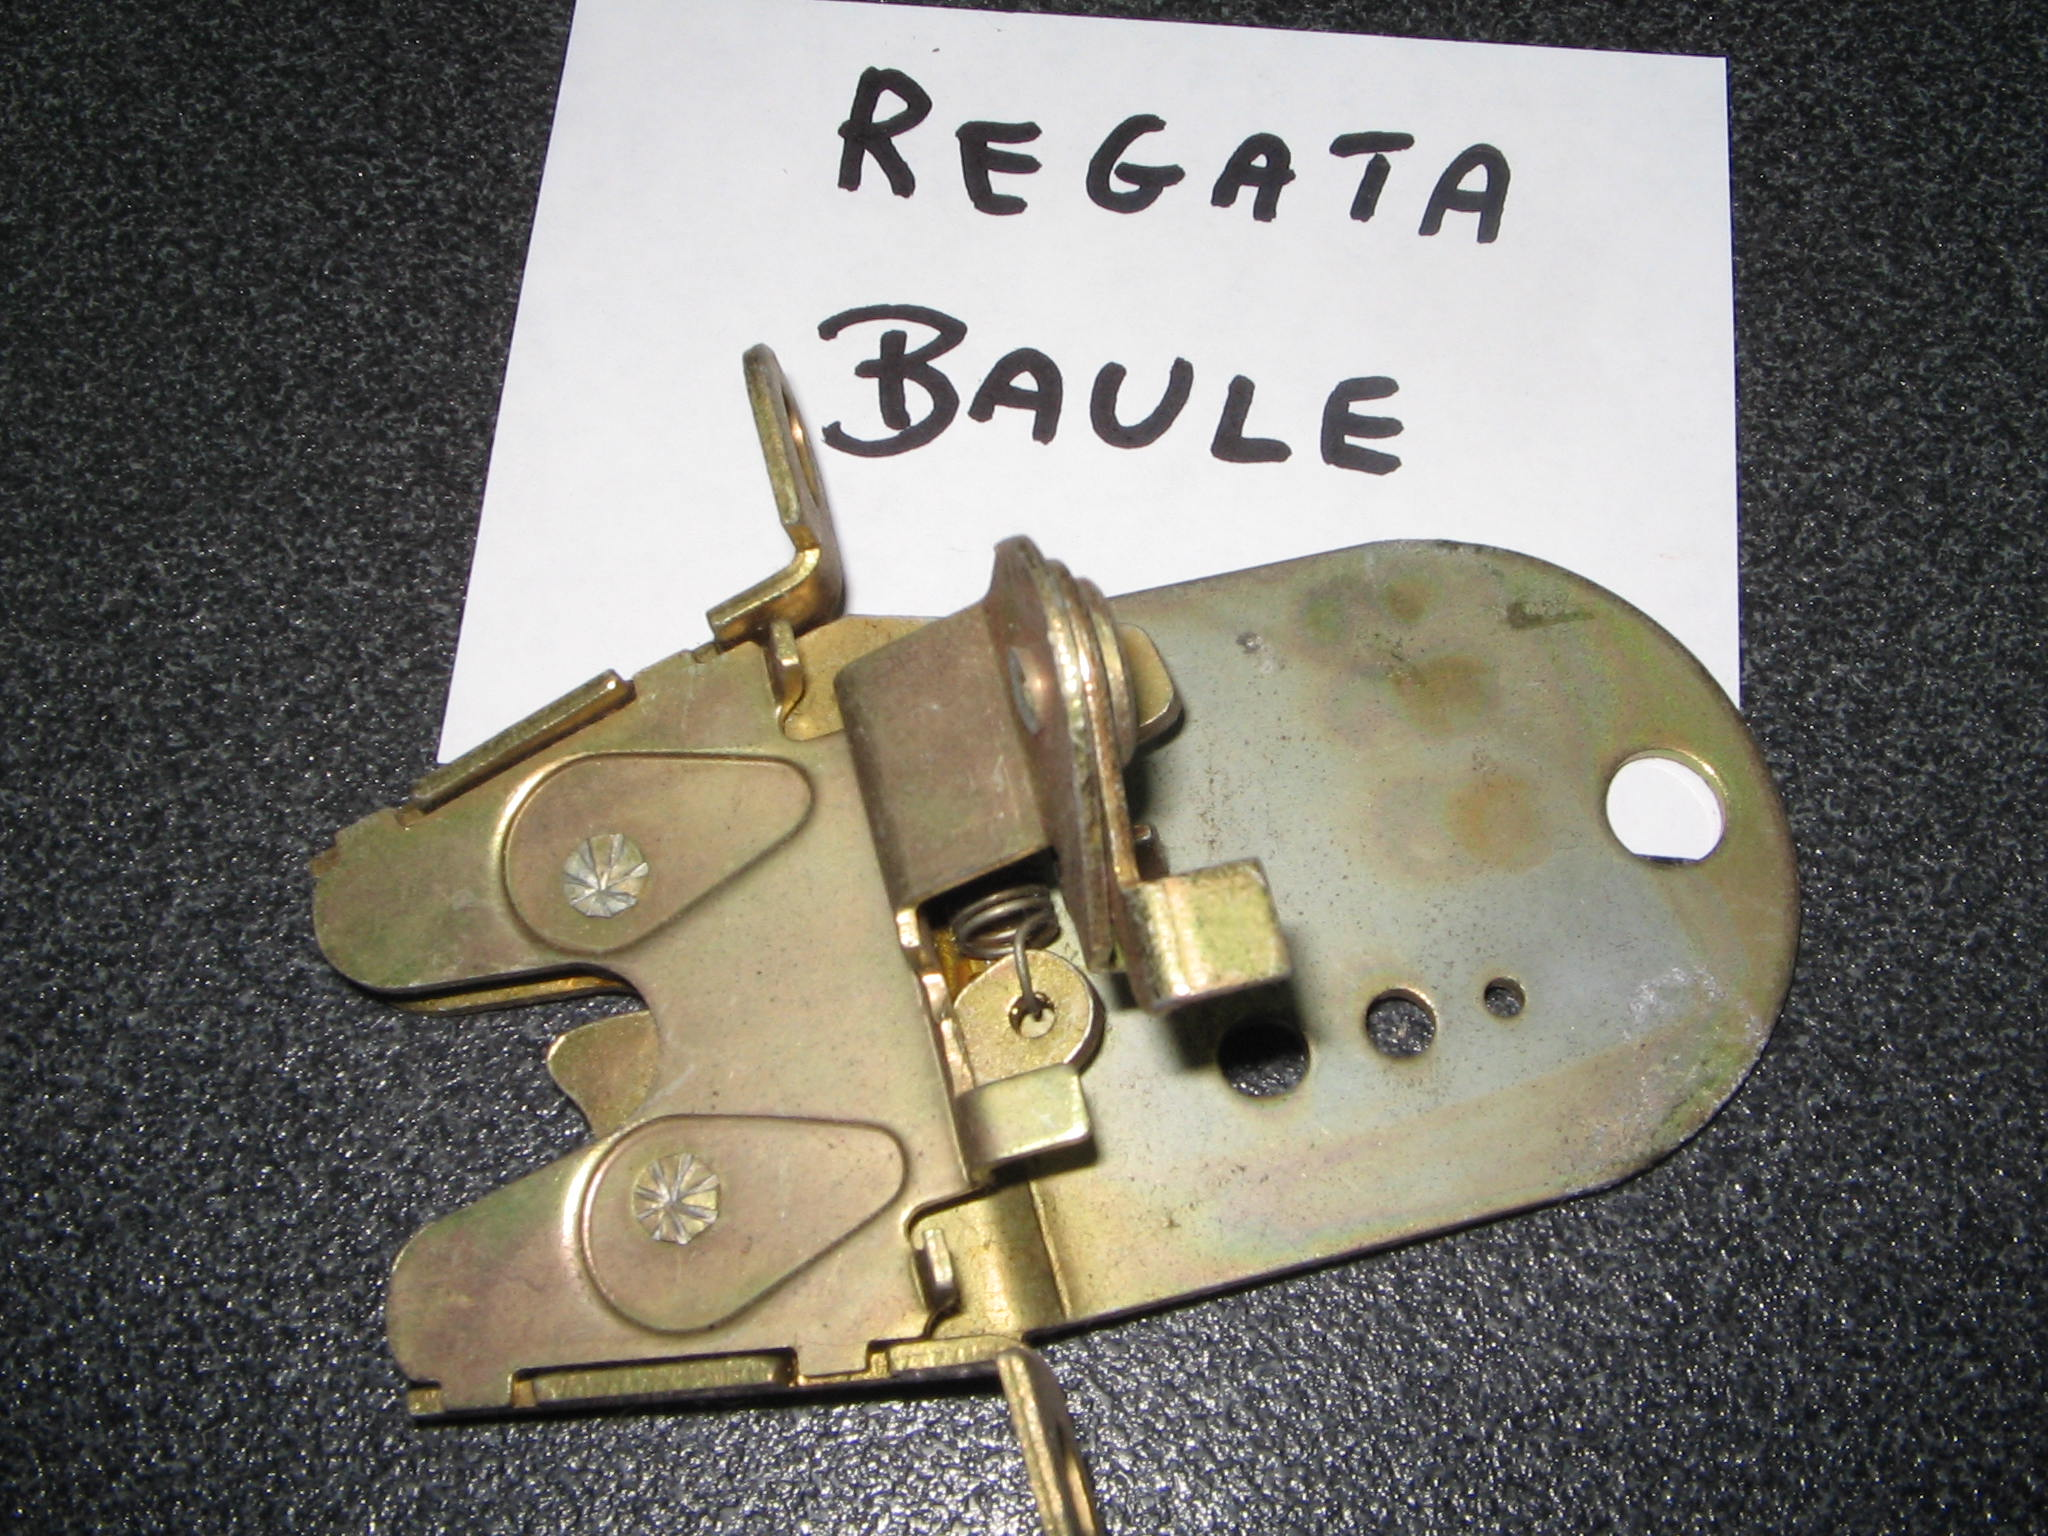 FIAT REGATA  SERRATURA  BAULE     ART.1189